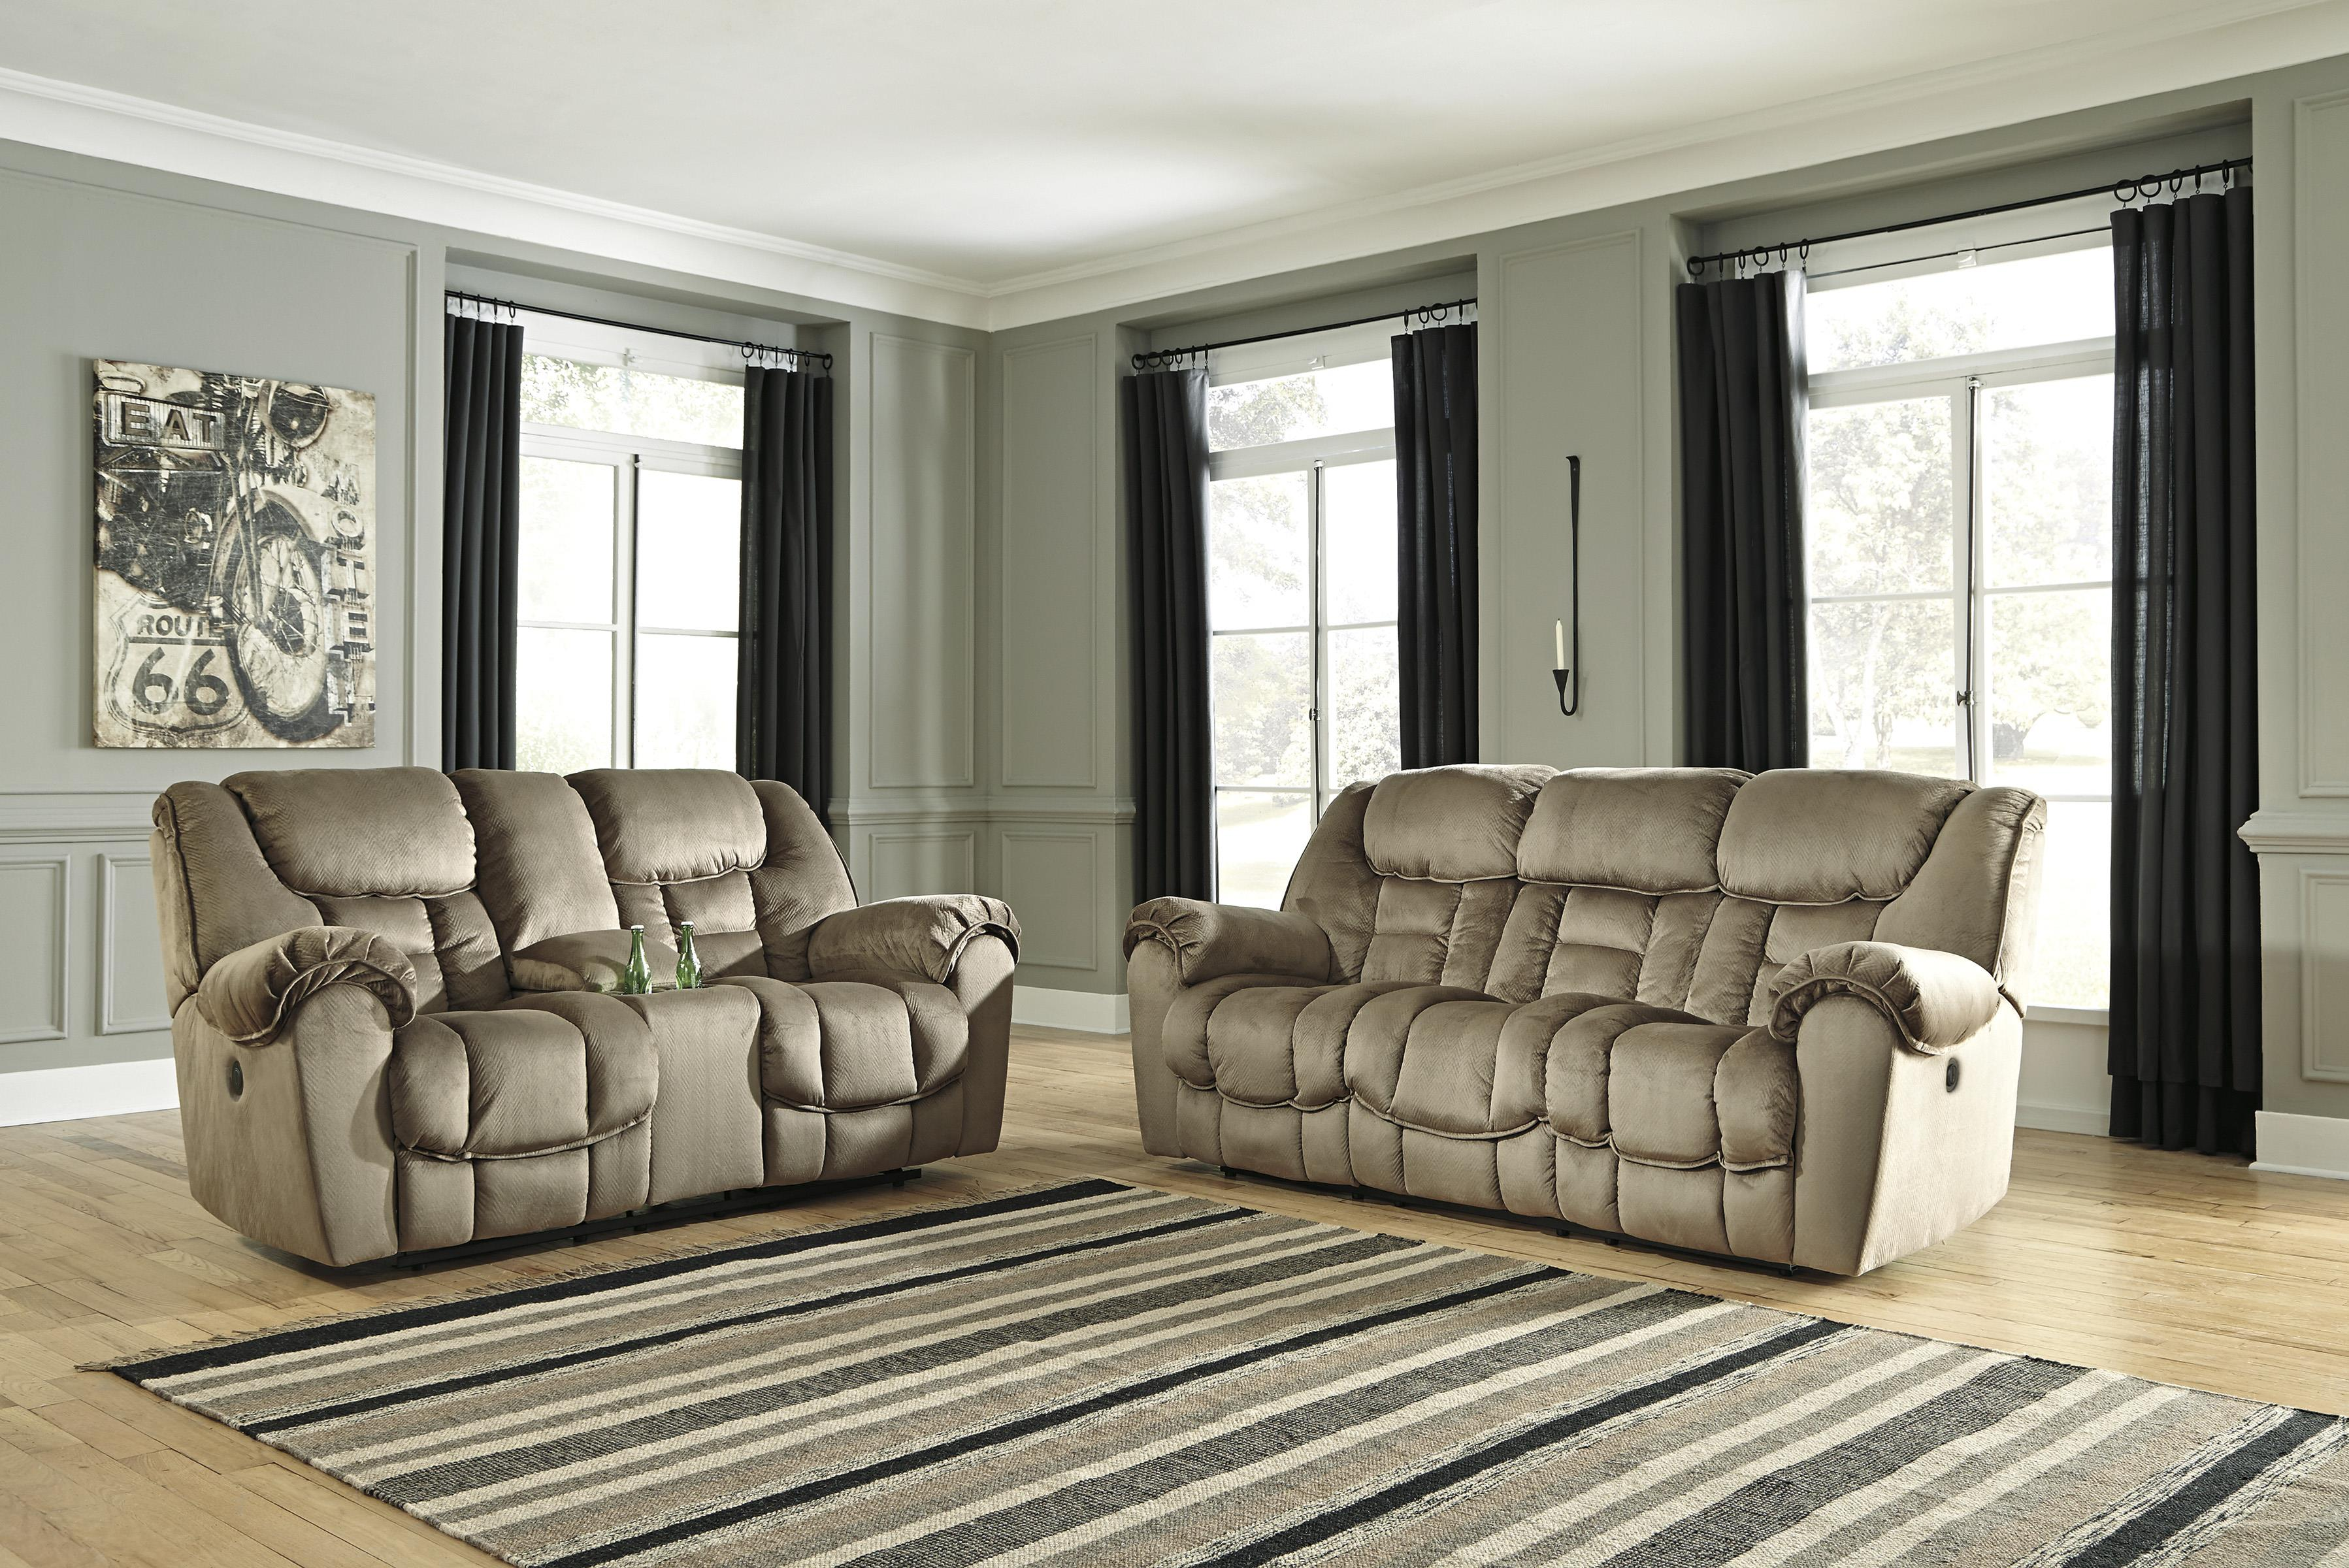 Benchcraft Jodoca Reclining Living Room Group - Item Number: 36601 Living Room Group 2